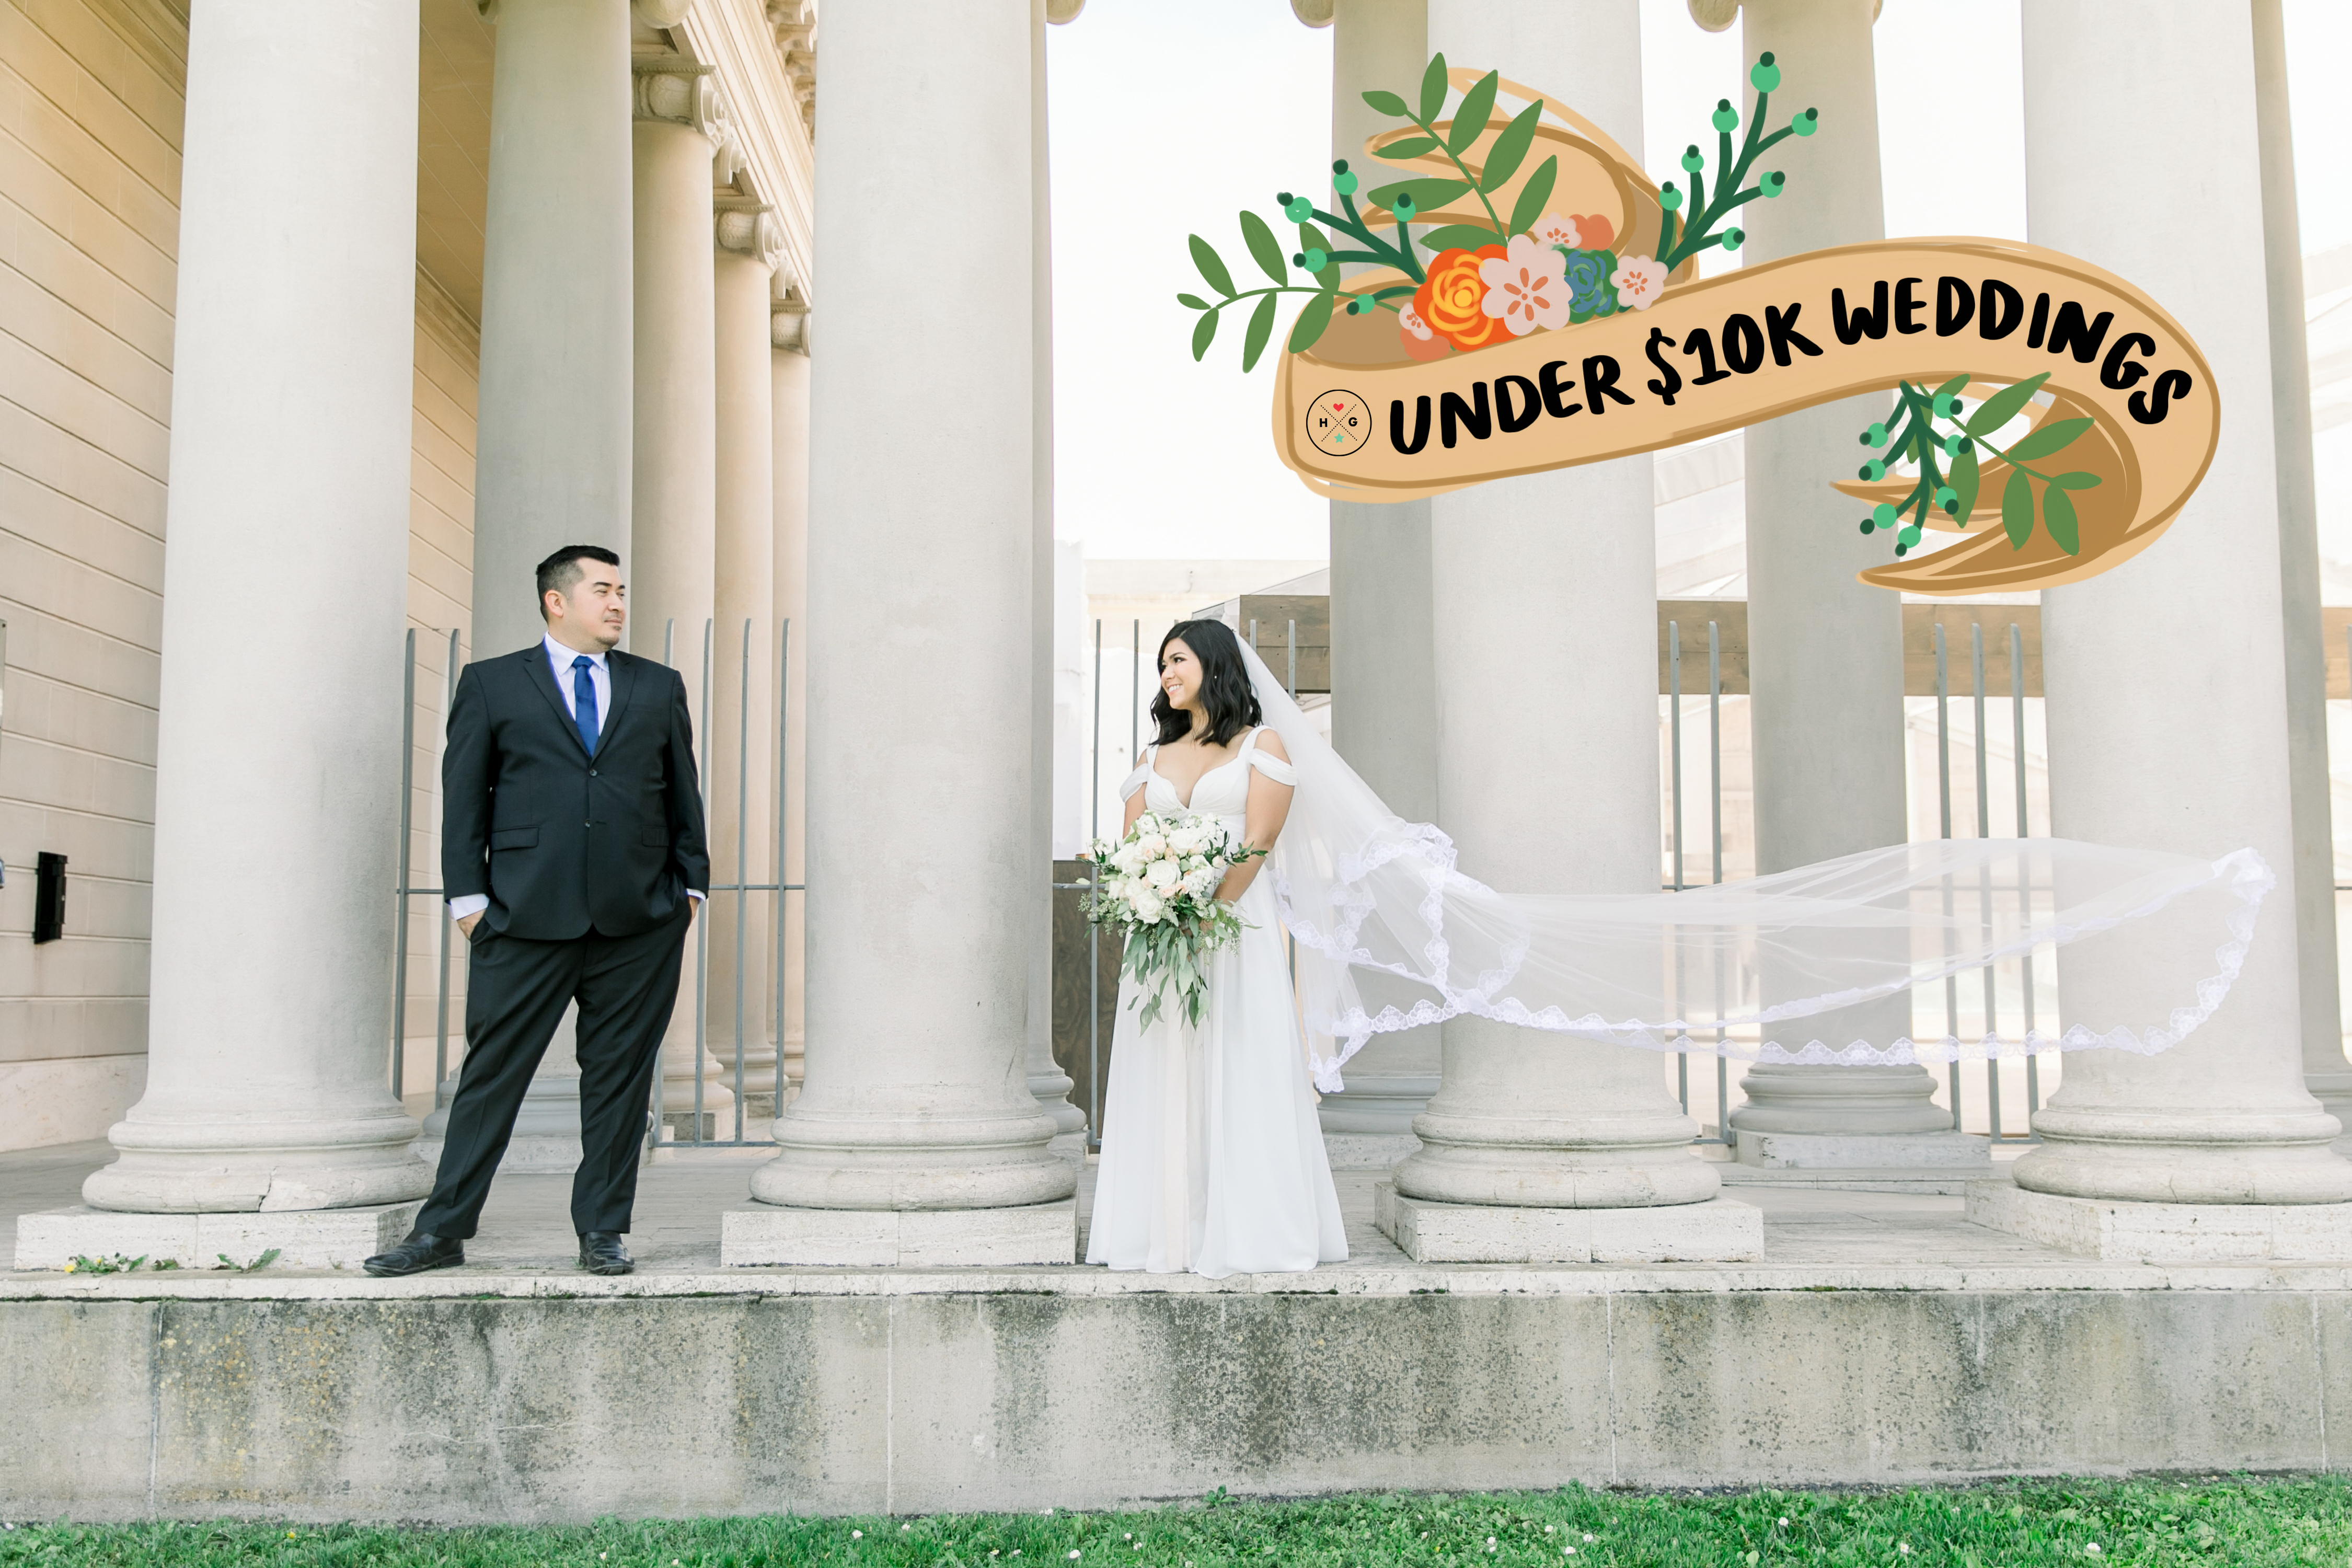 Under $10k Weddings: Kris and Iris's sweet San Francisco wedding